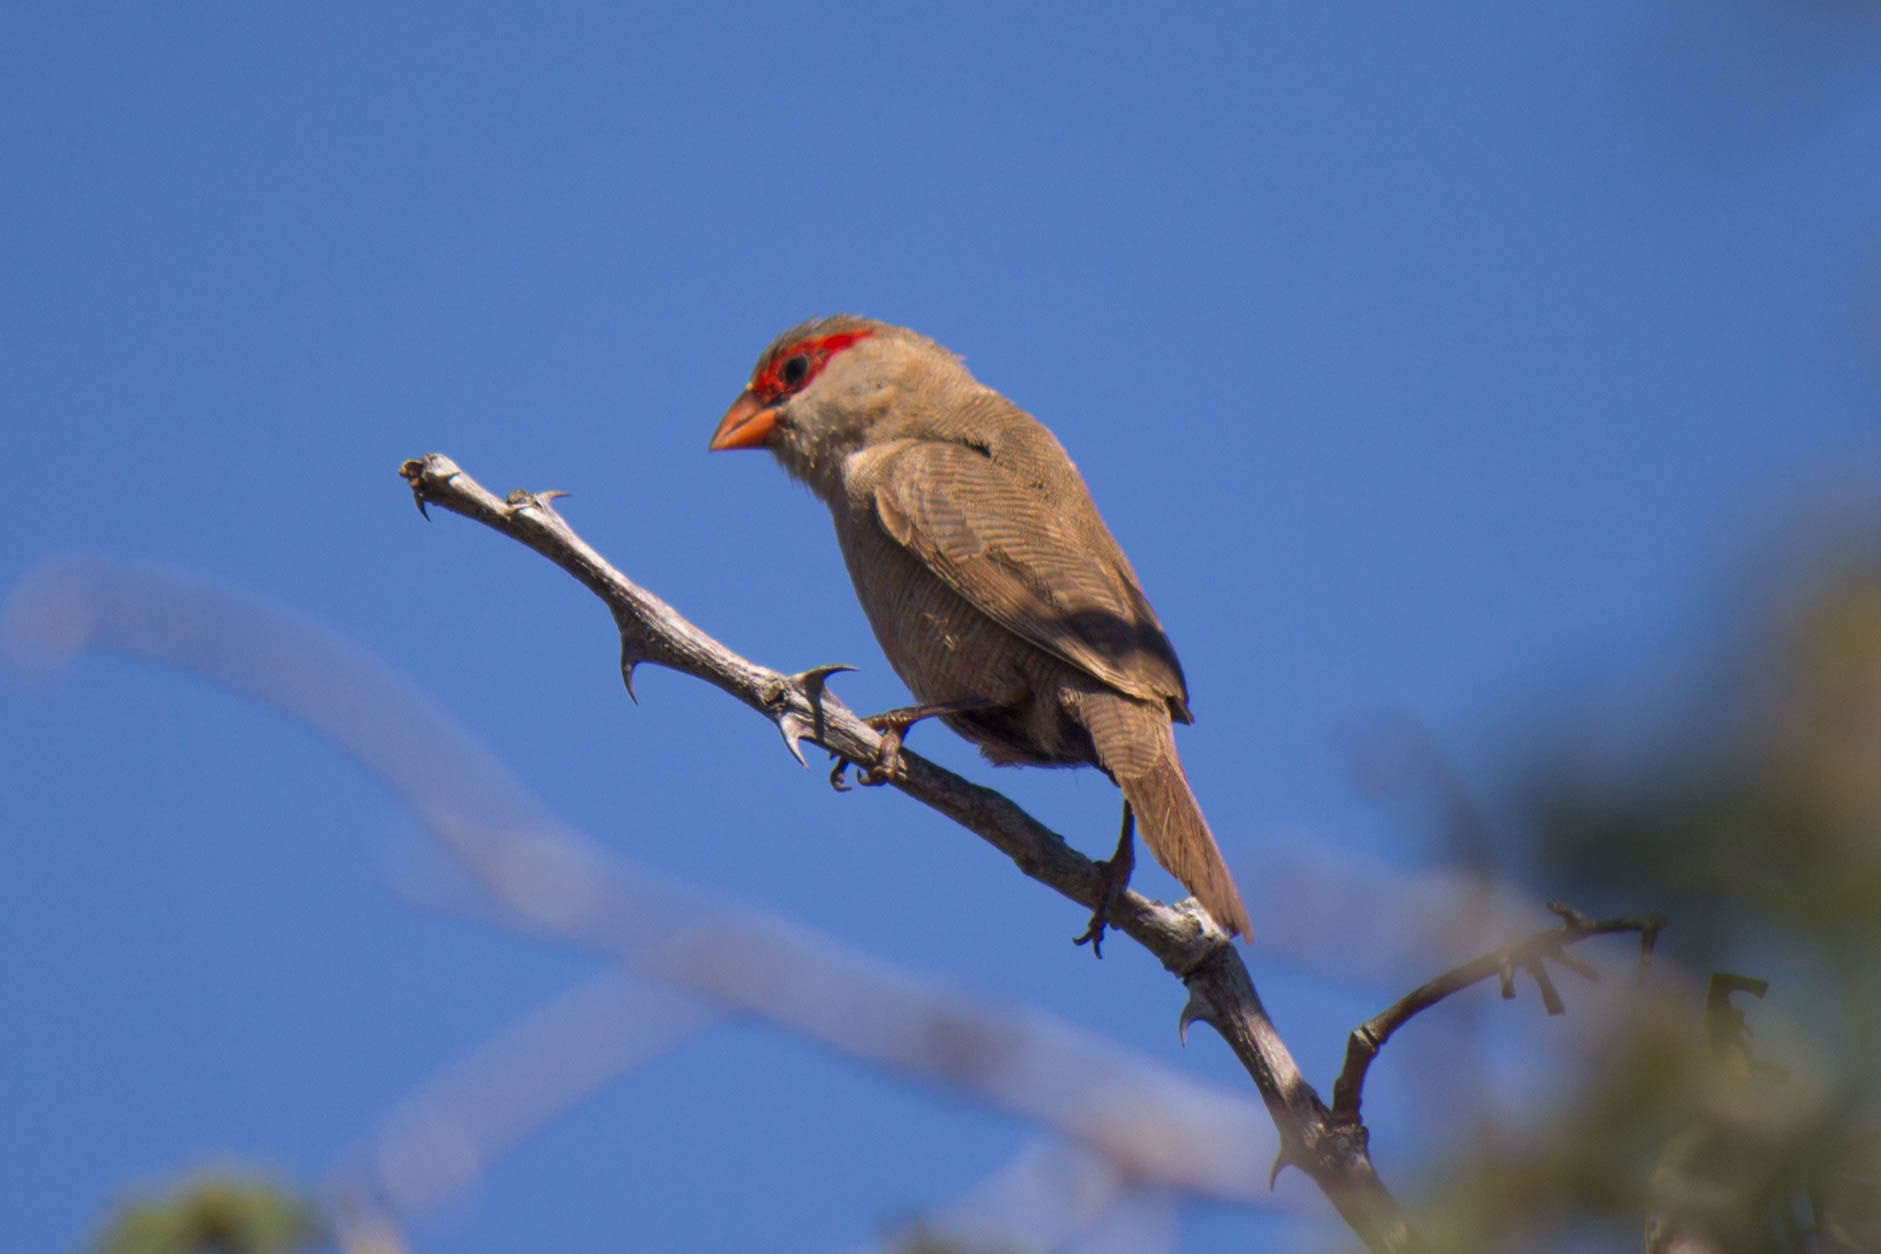 Common Waxbill @ Thanda Private Game Reserve. Photo: Håvard Rosenlund